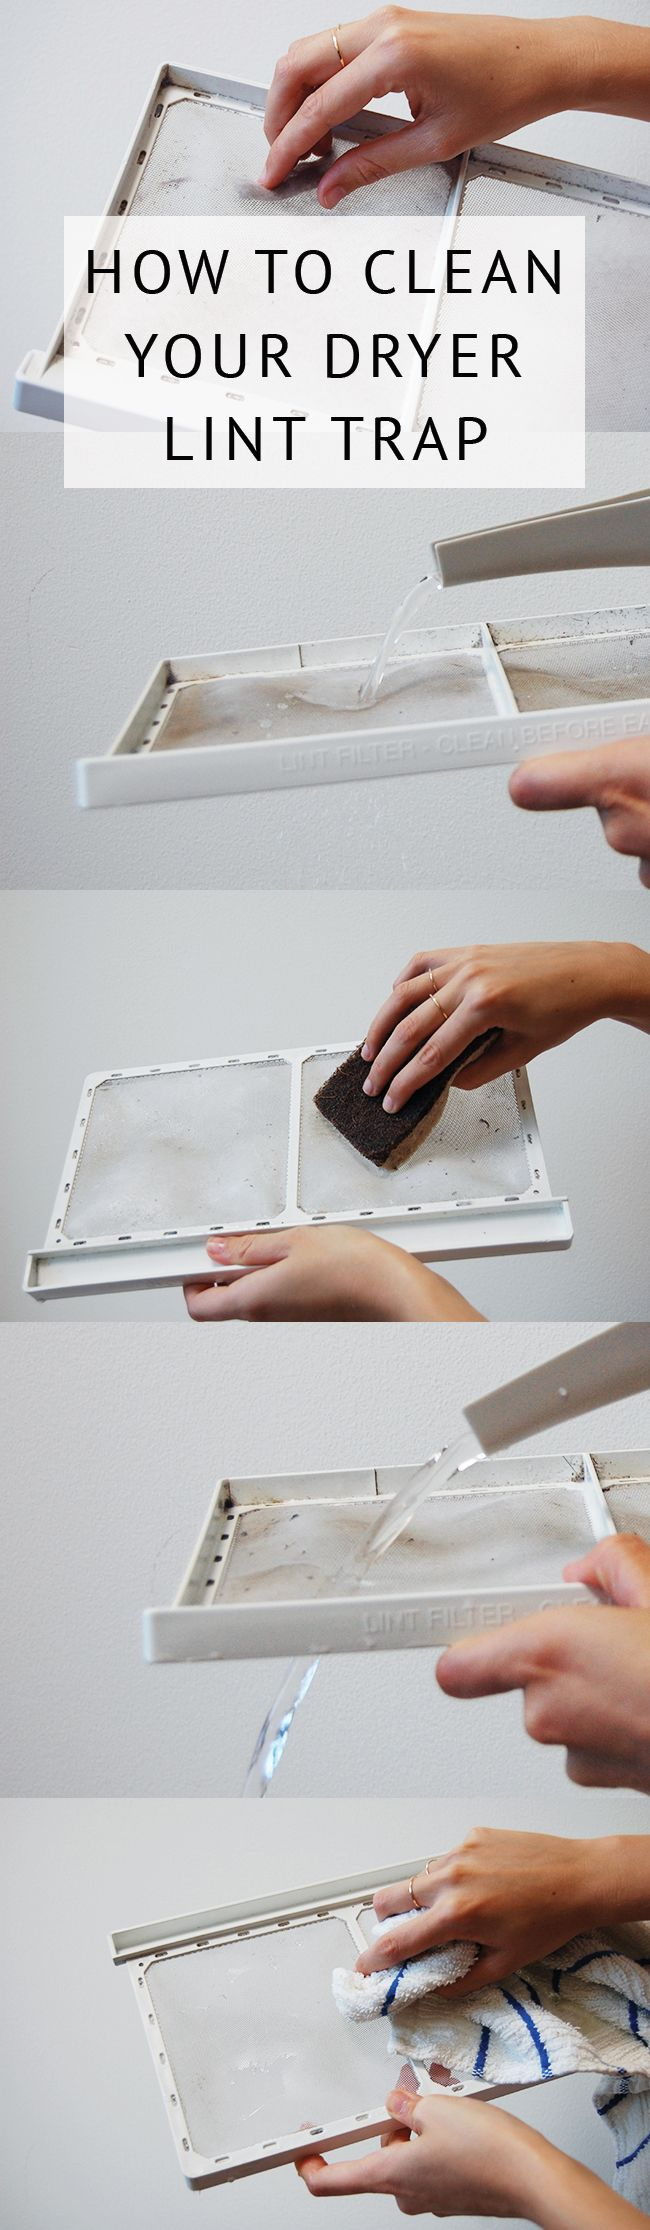 Easy dryer lint trap cleaning how-to - clean regularly to avoid a fire hazard! via @acleanbee